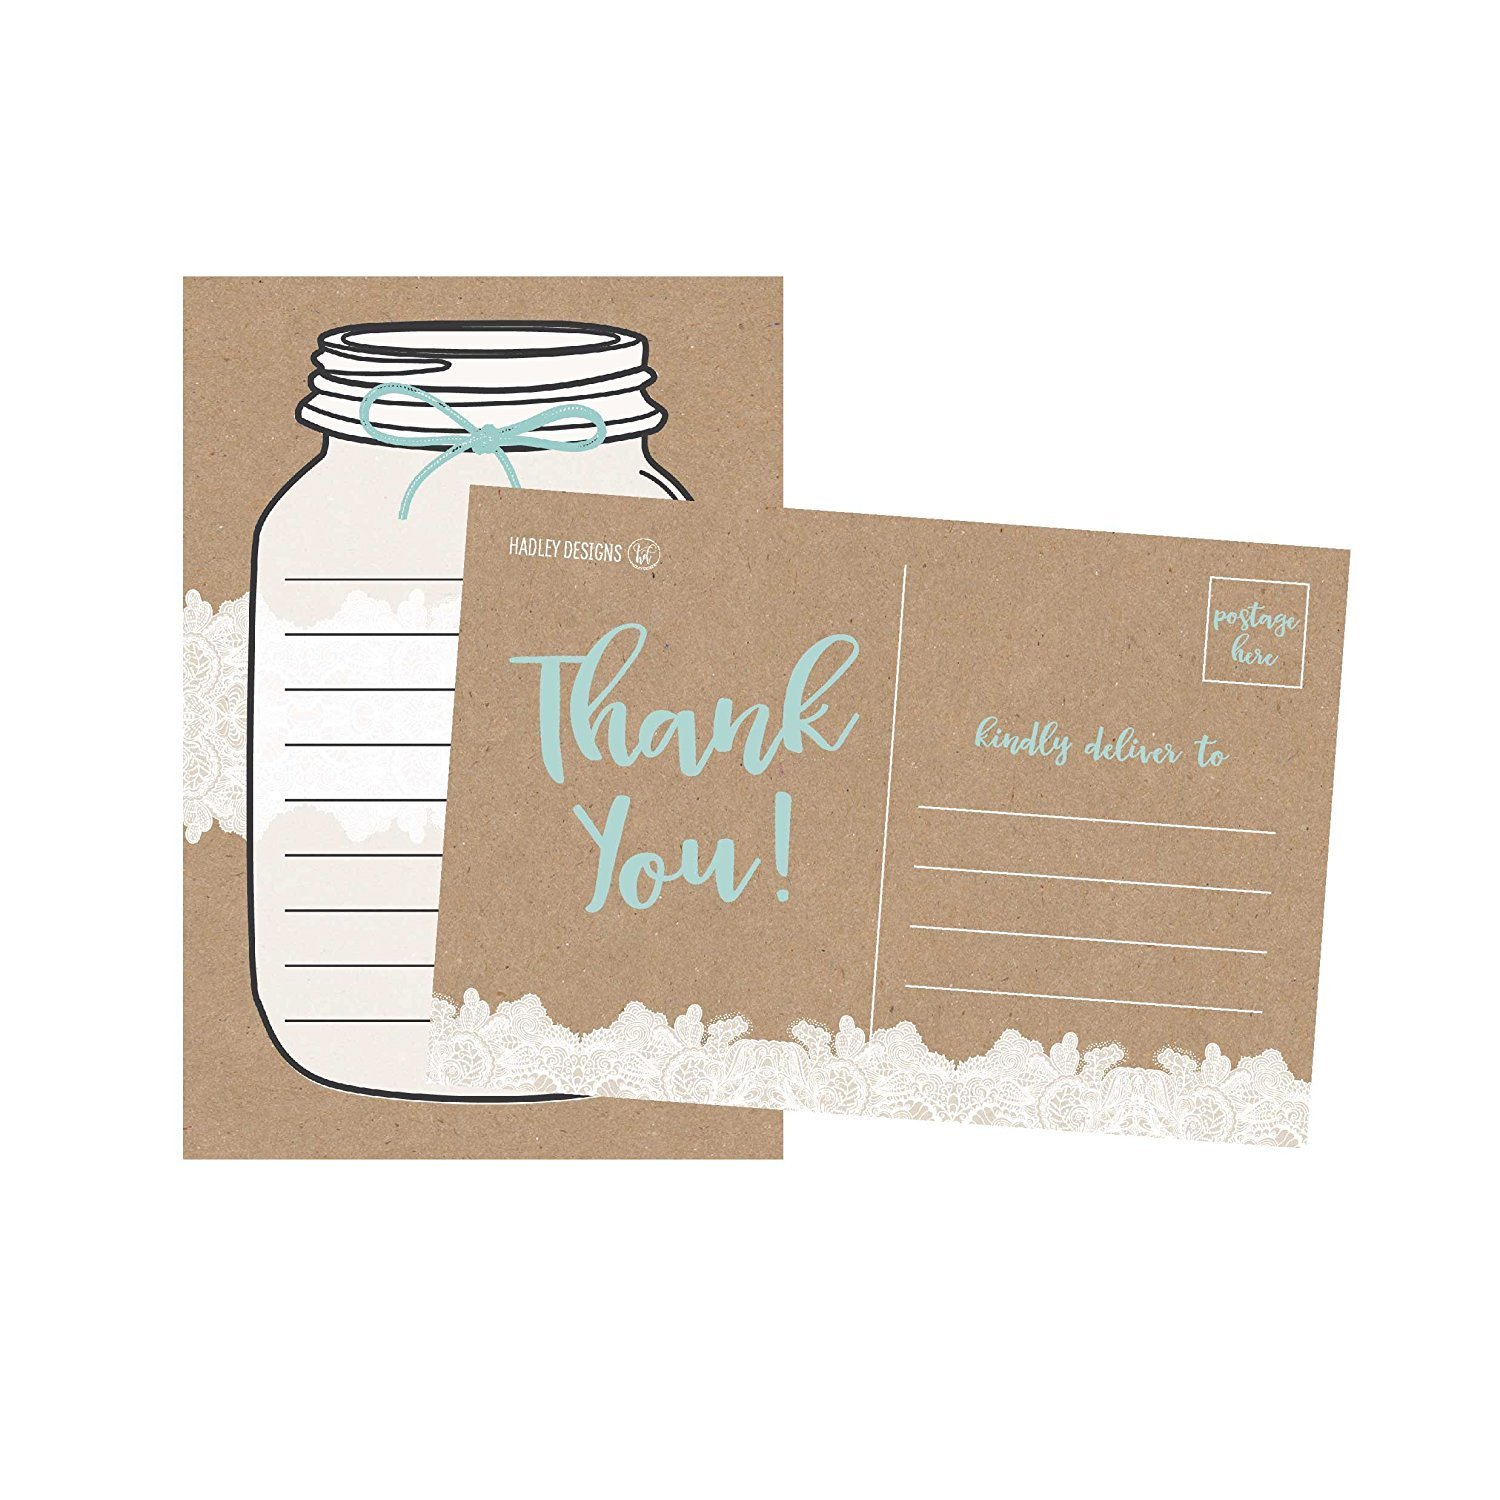 50 4x6 Rustic Blank Thank You Postcards Bulk, Cute Kraft Modern Blank Thank You Note Card Stationery For Wedding Bridesmaid Bridal or Baby Shower, Teachers, Appreciation, Religious, Business, Holiday